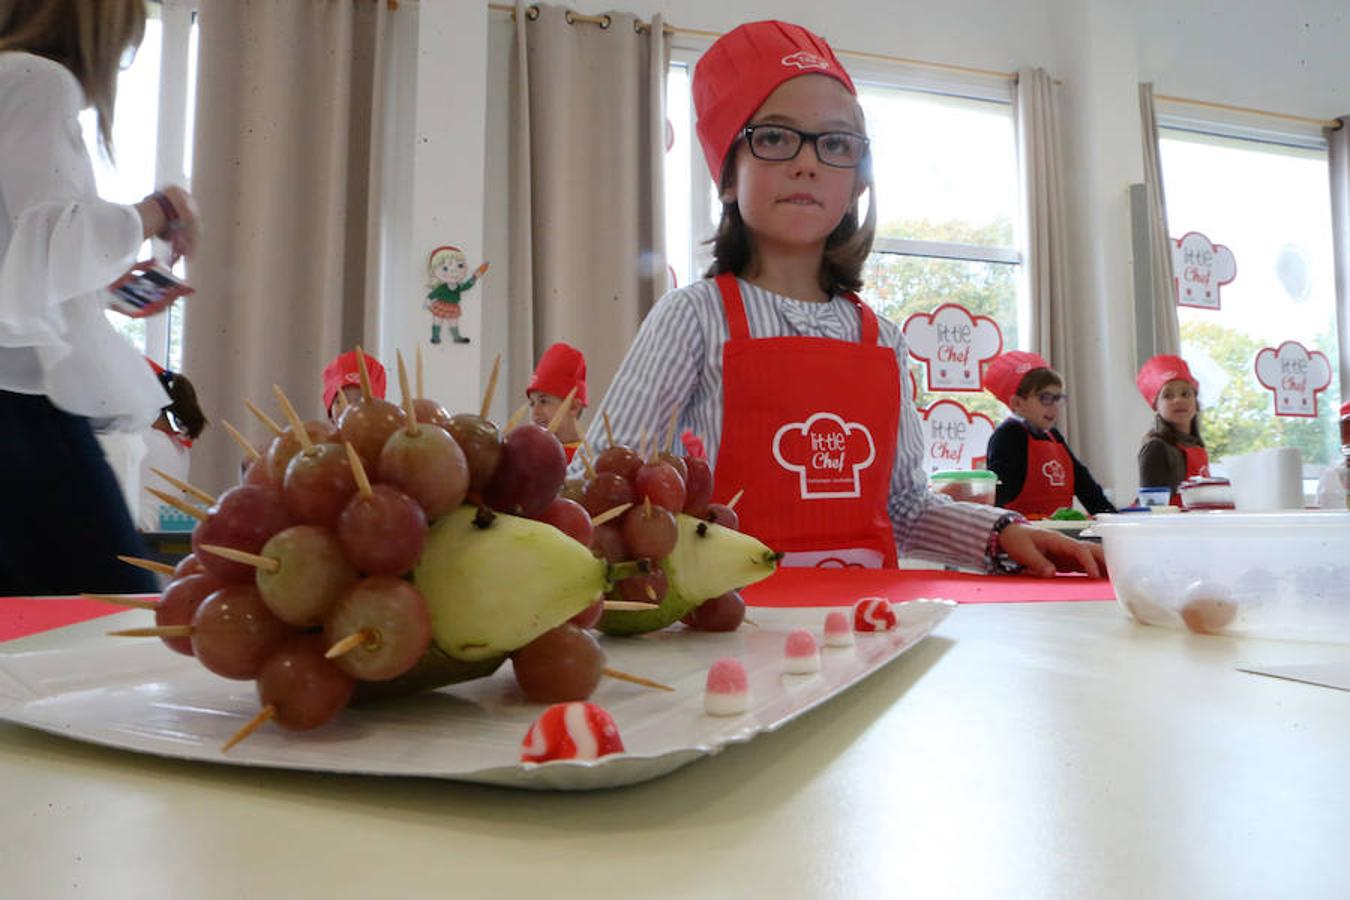 Concurso 'Little Chef' en el Colegio Peñamayor